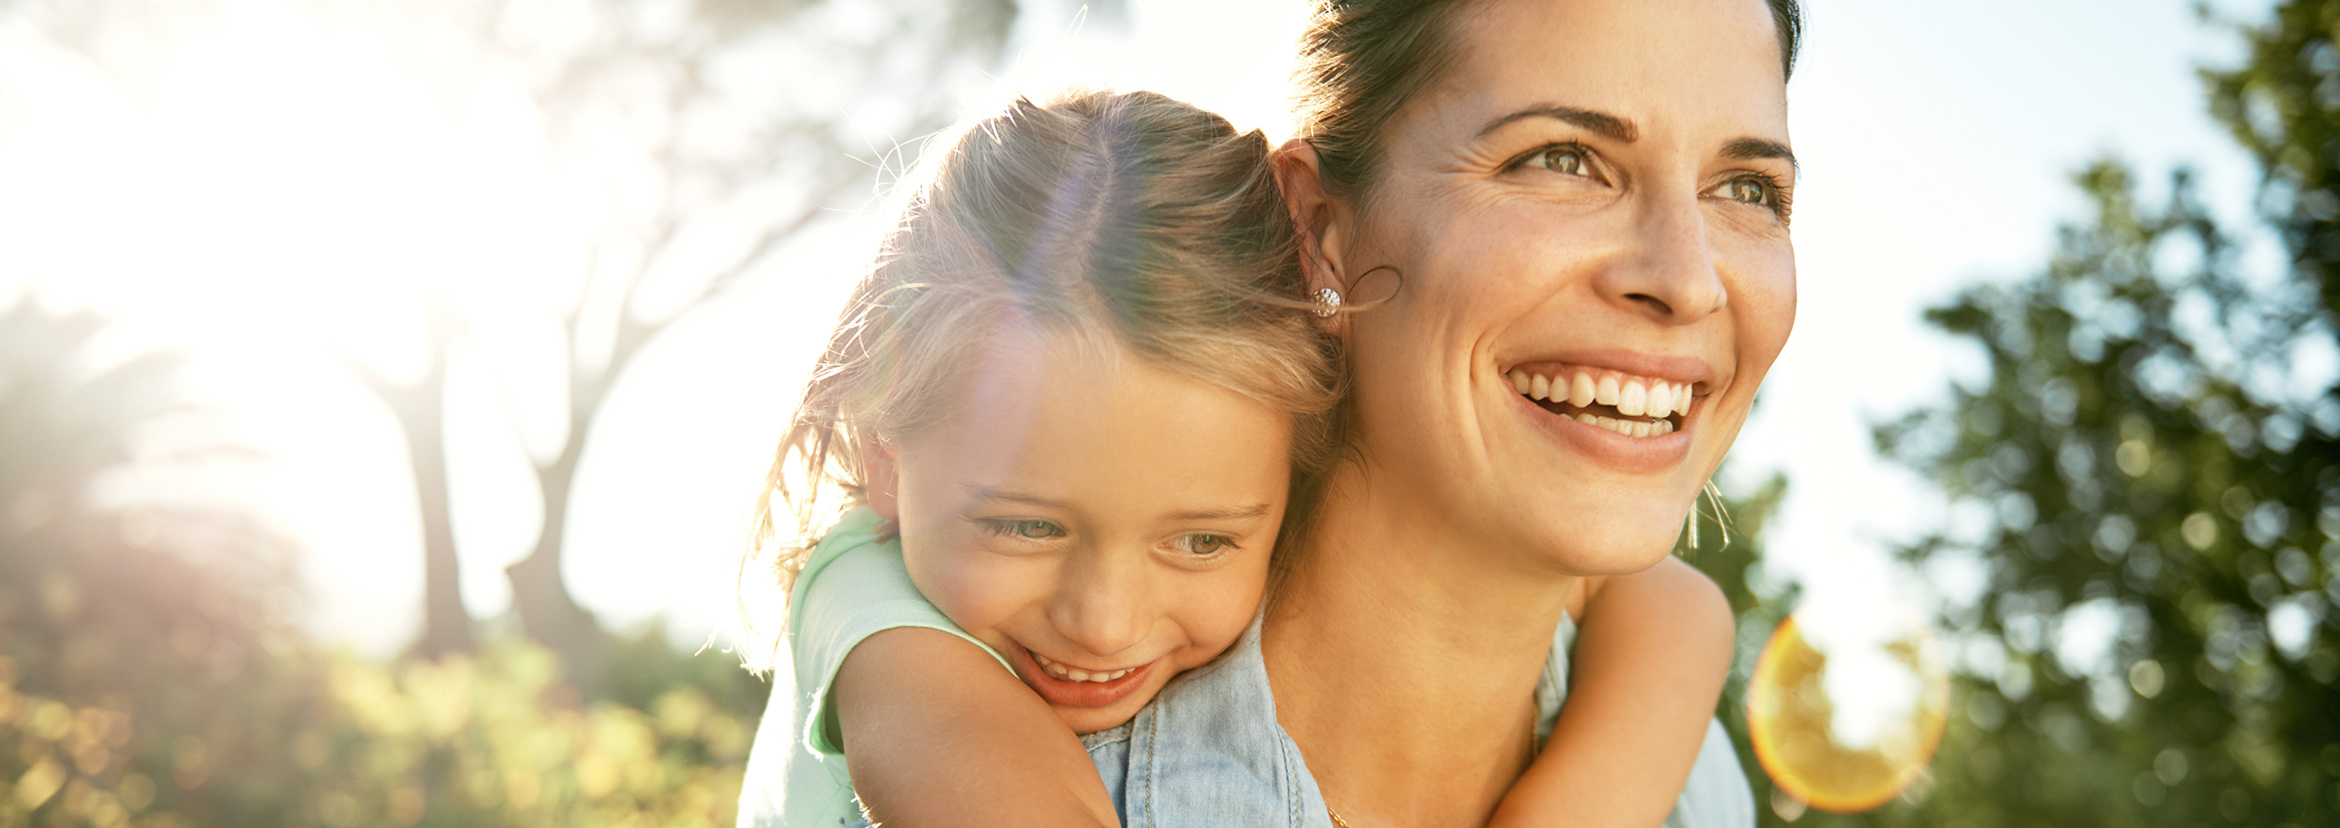 Proven_Insect_Repellent_Mom_daughter_toddler_Deetfree_Nontoxic